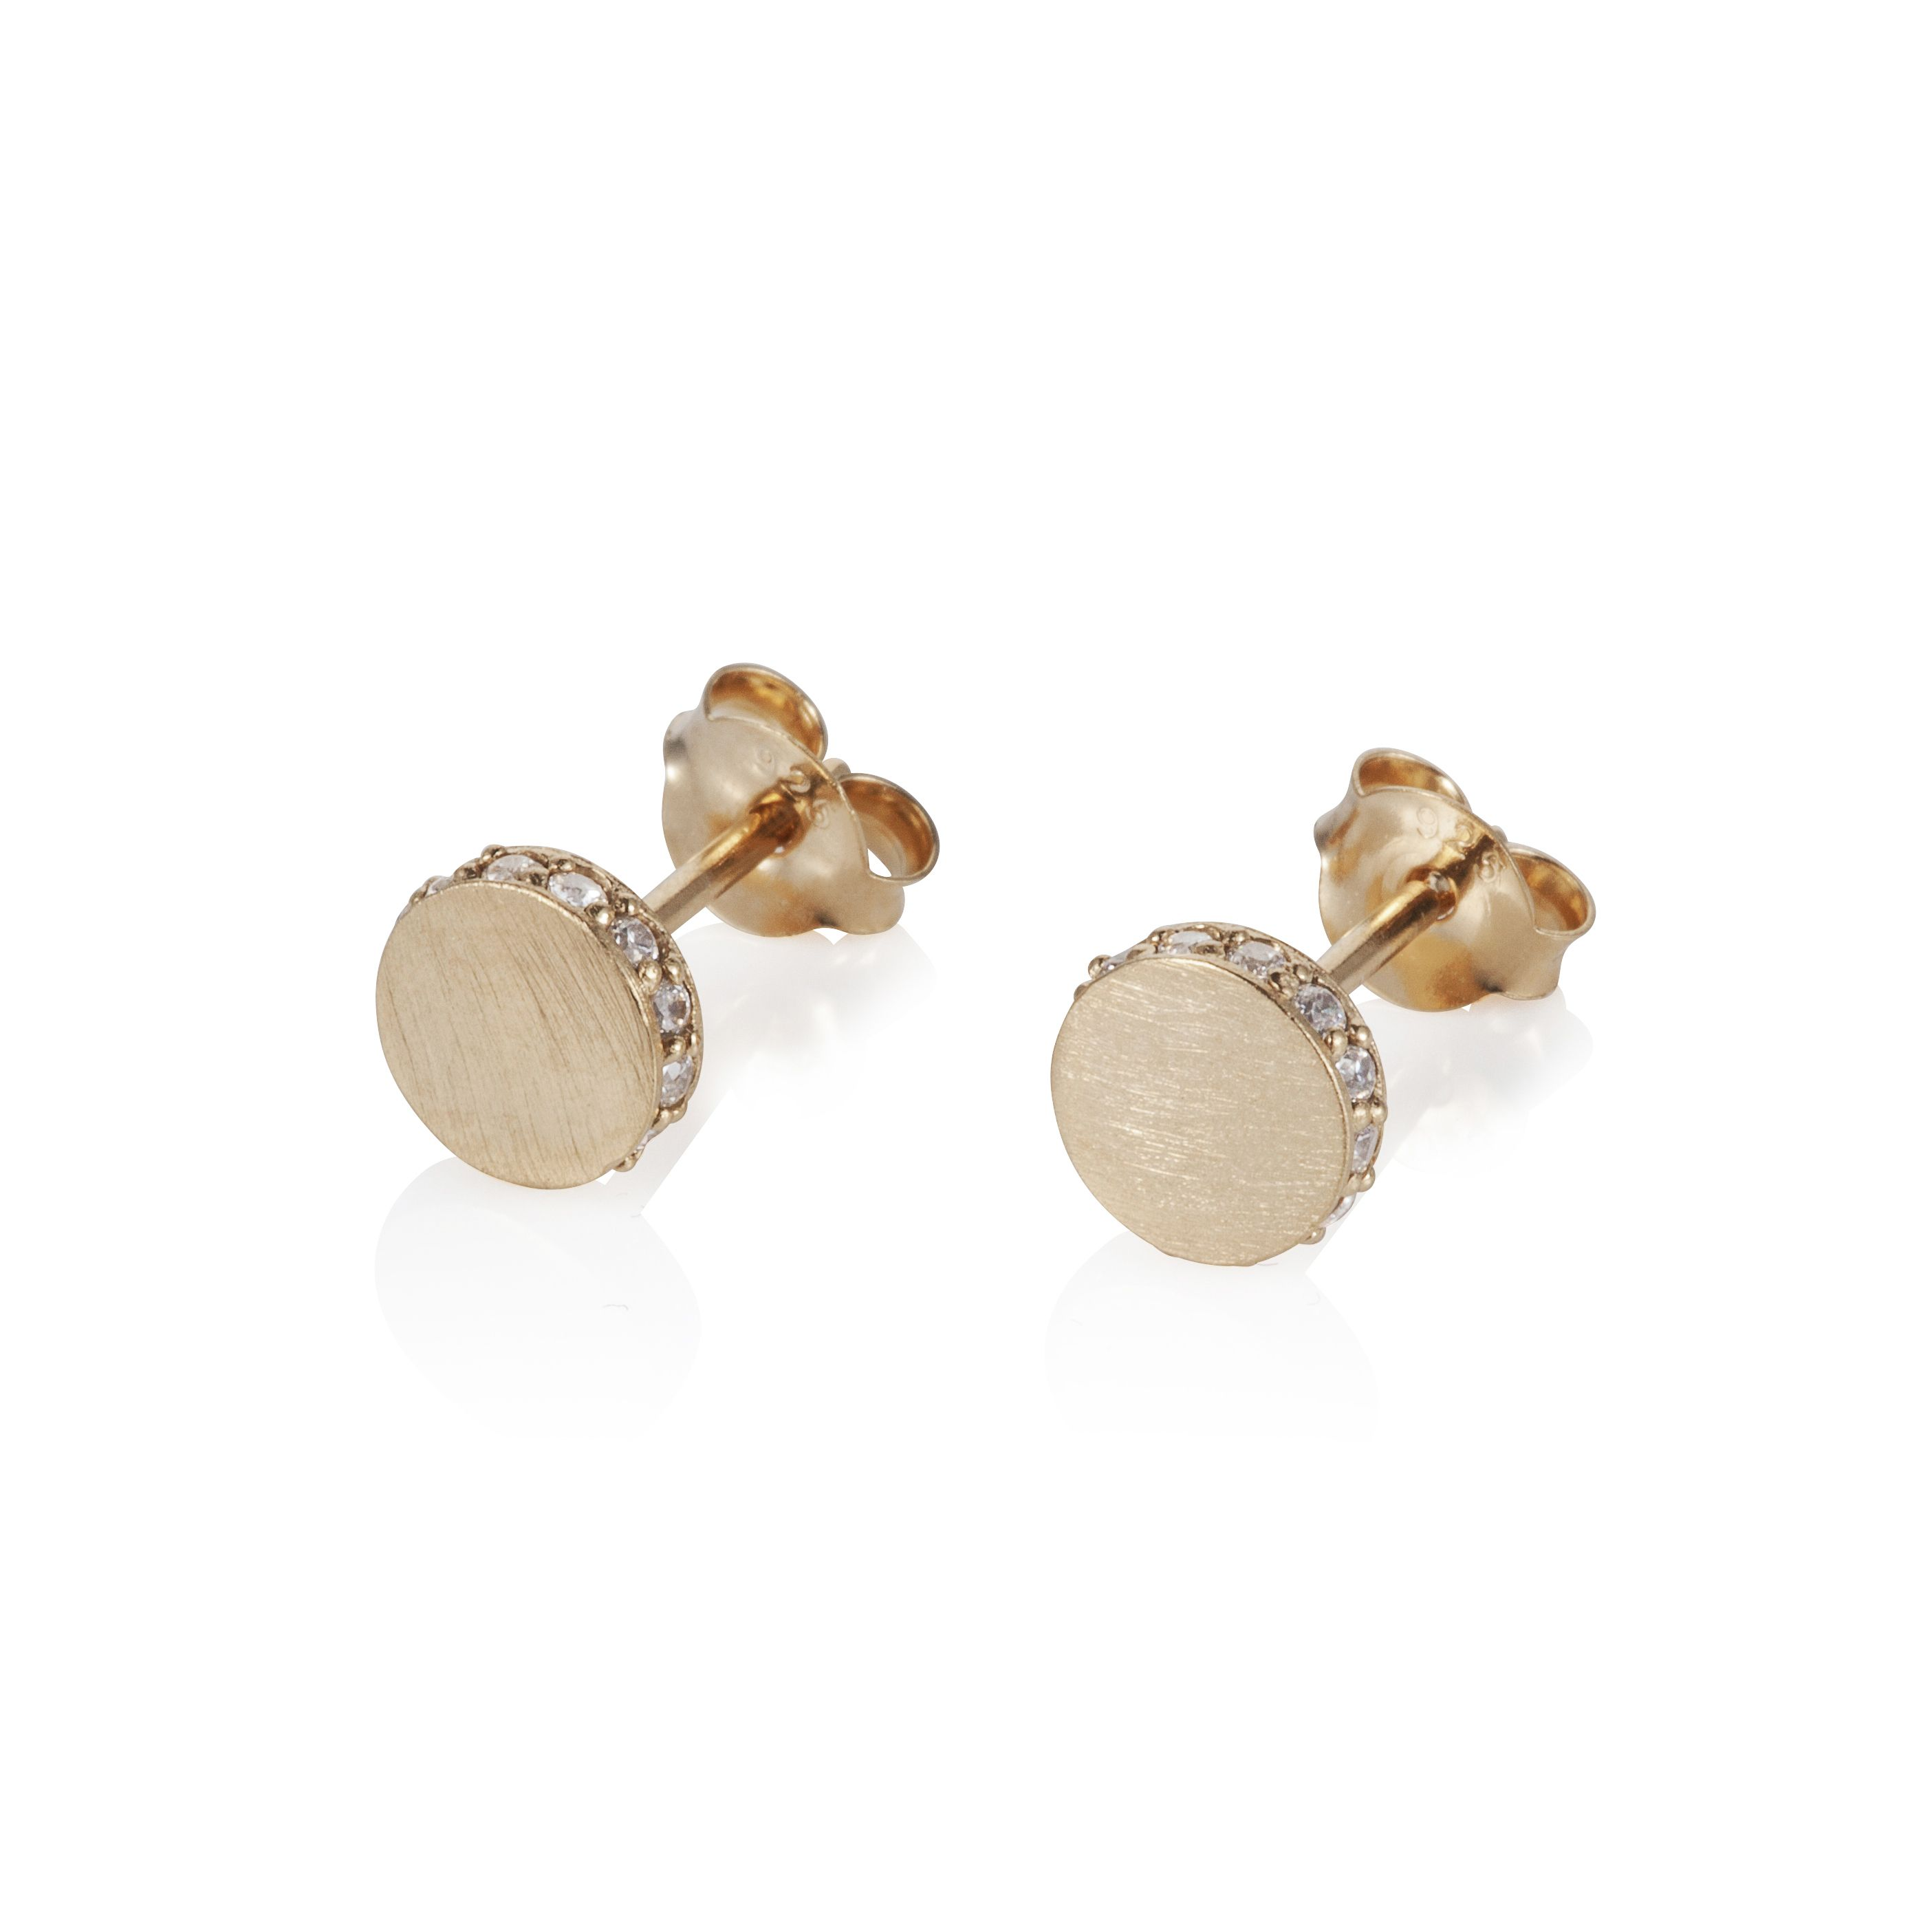 18ct gold plated sterling silver earrings